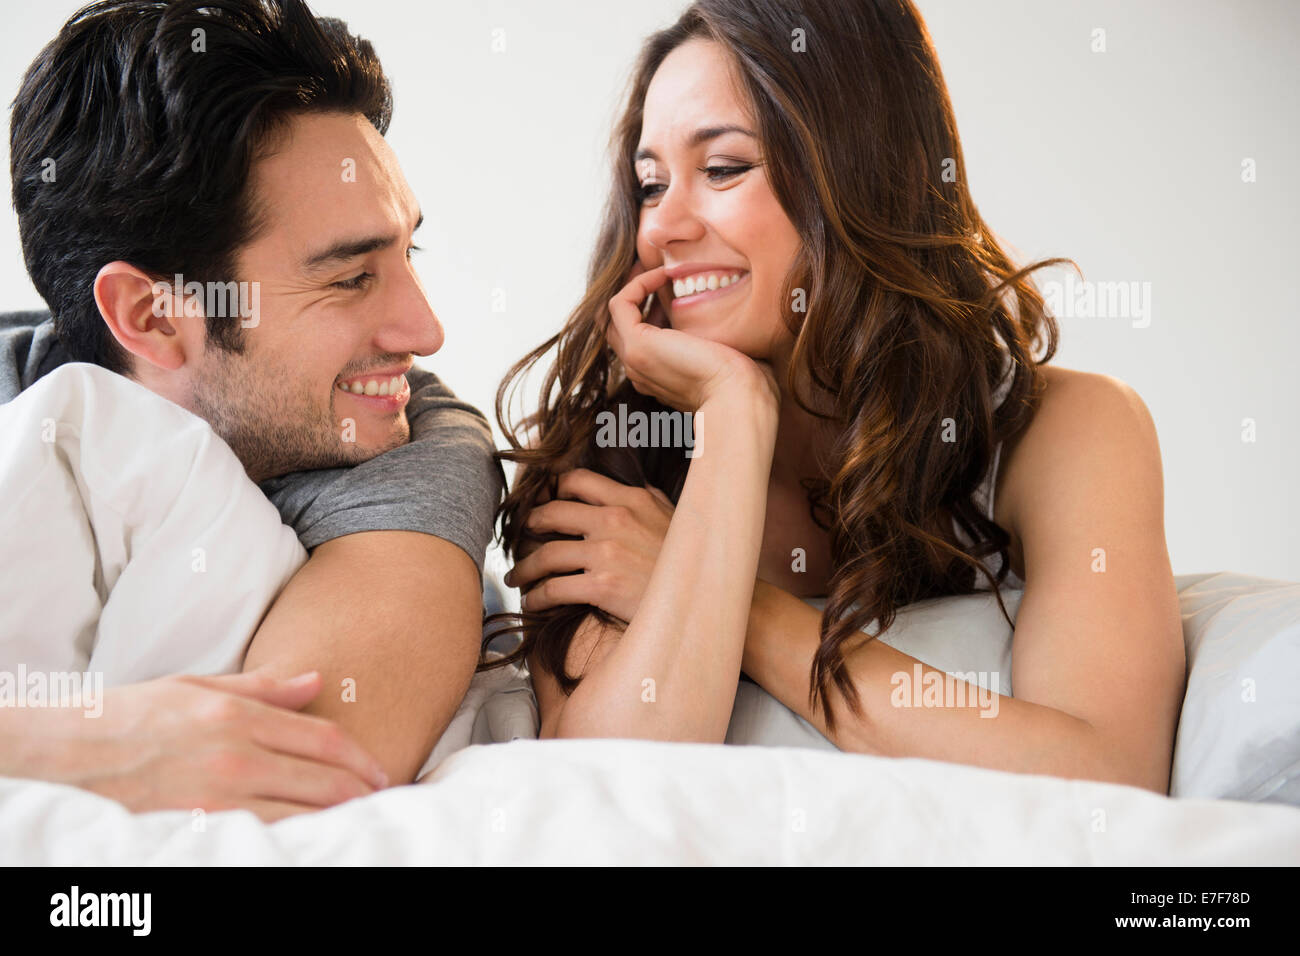 Couple relaxing together in bed Banque D'Images